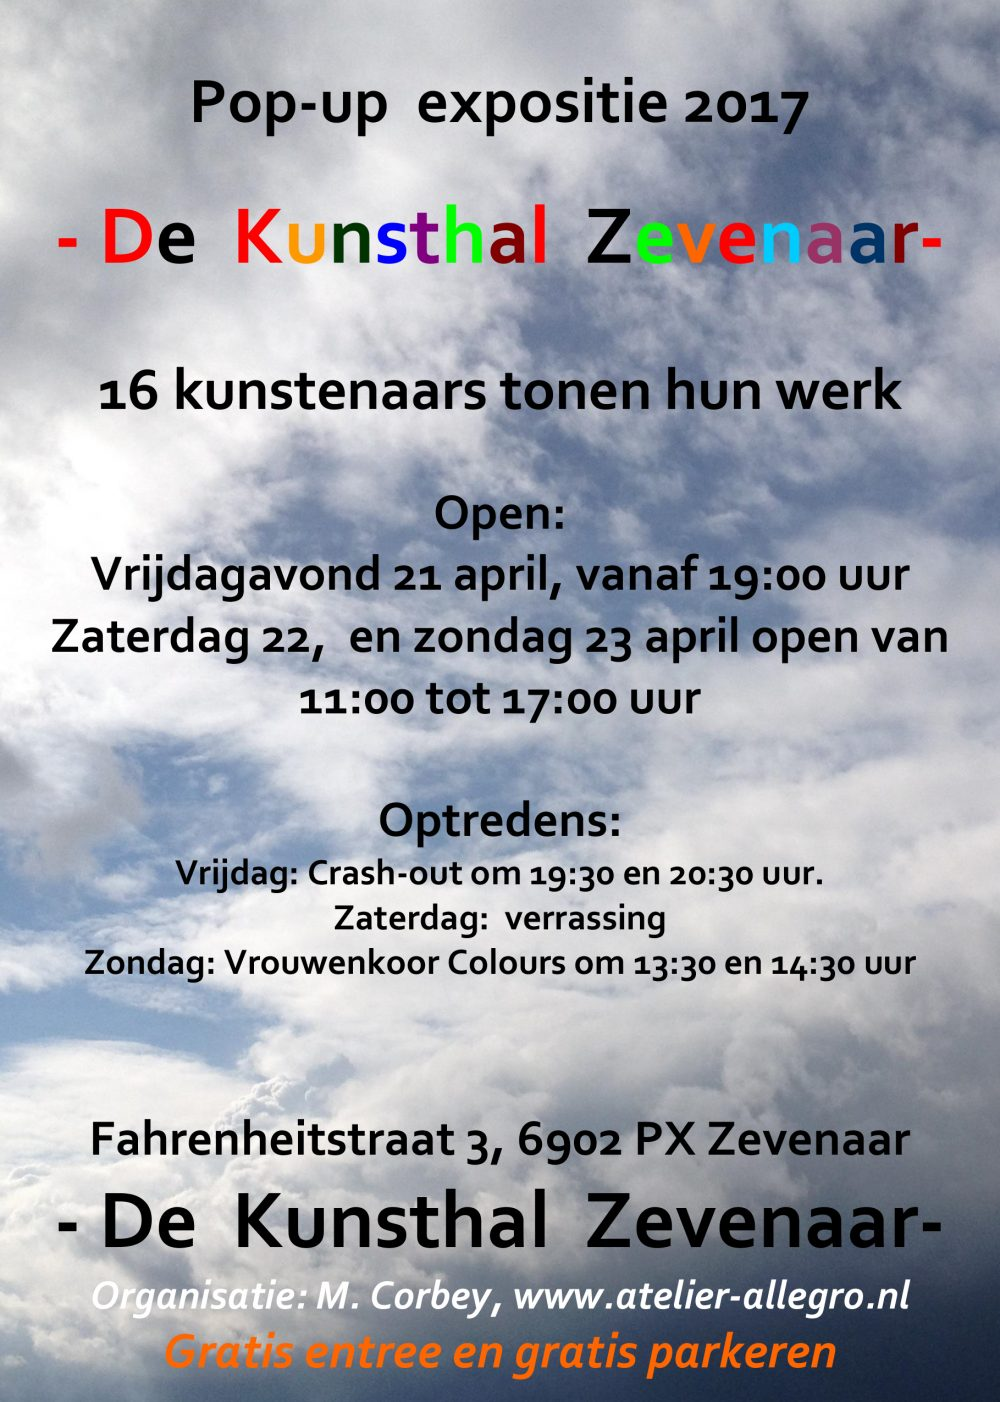 Pop-up expositie in het weekend na Pasen.